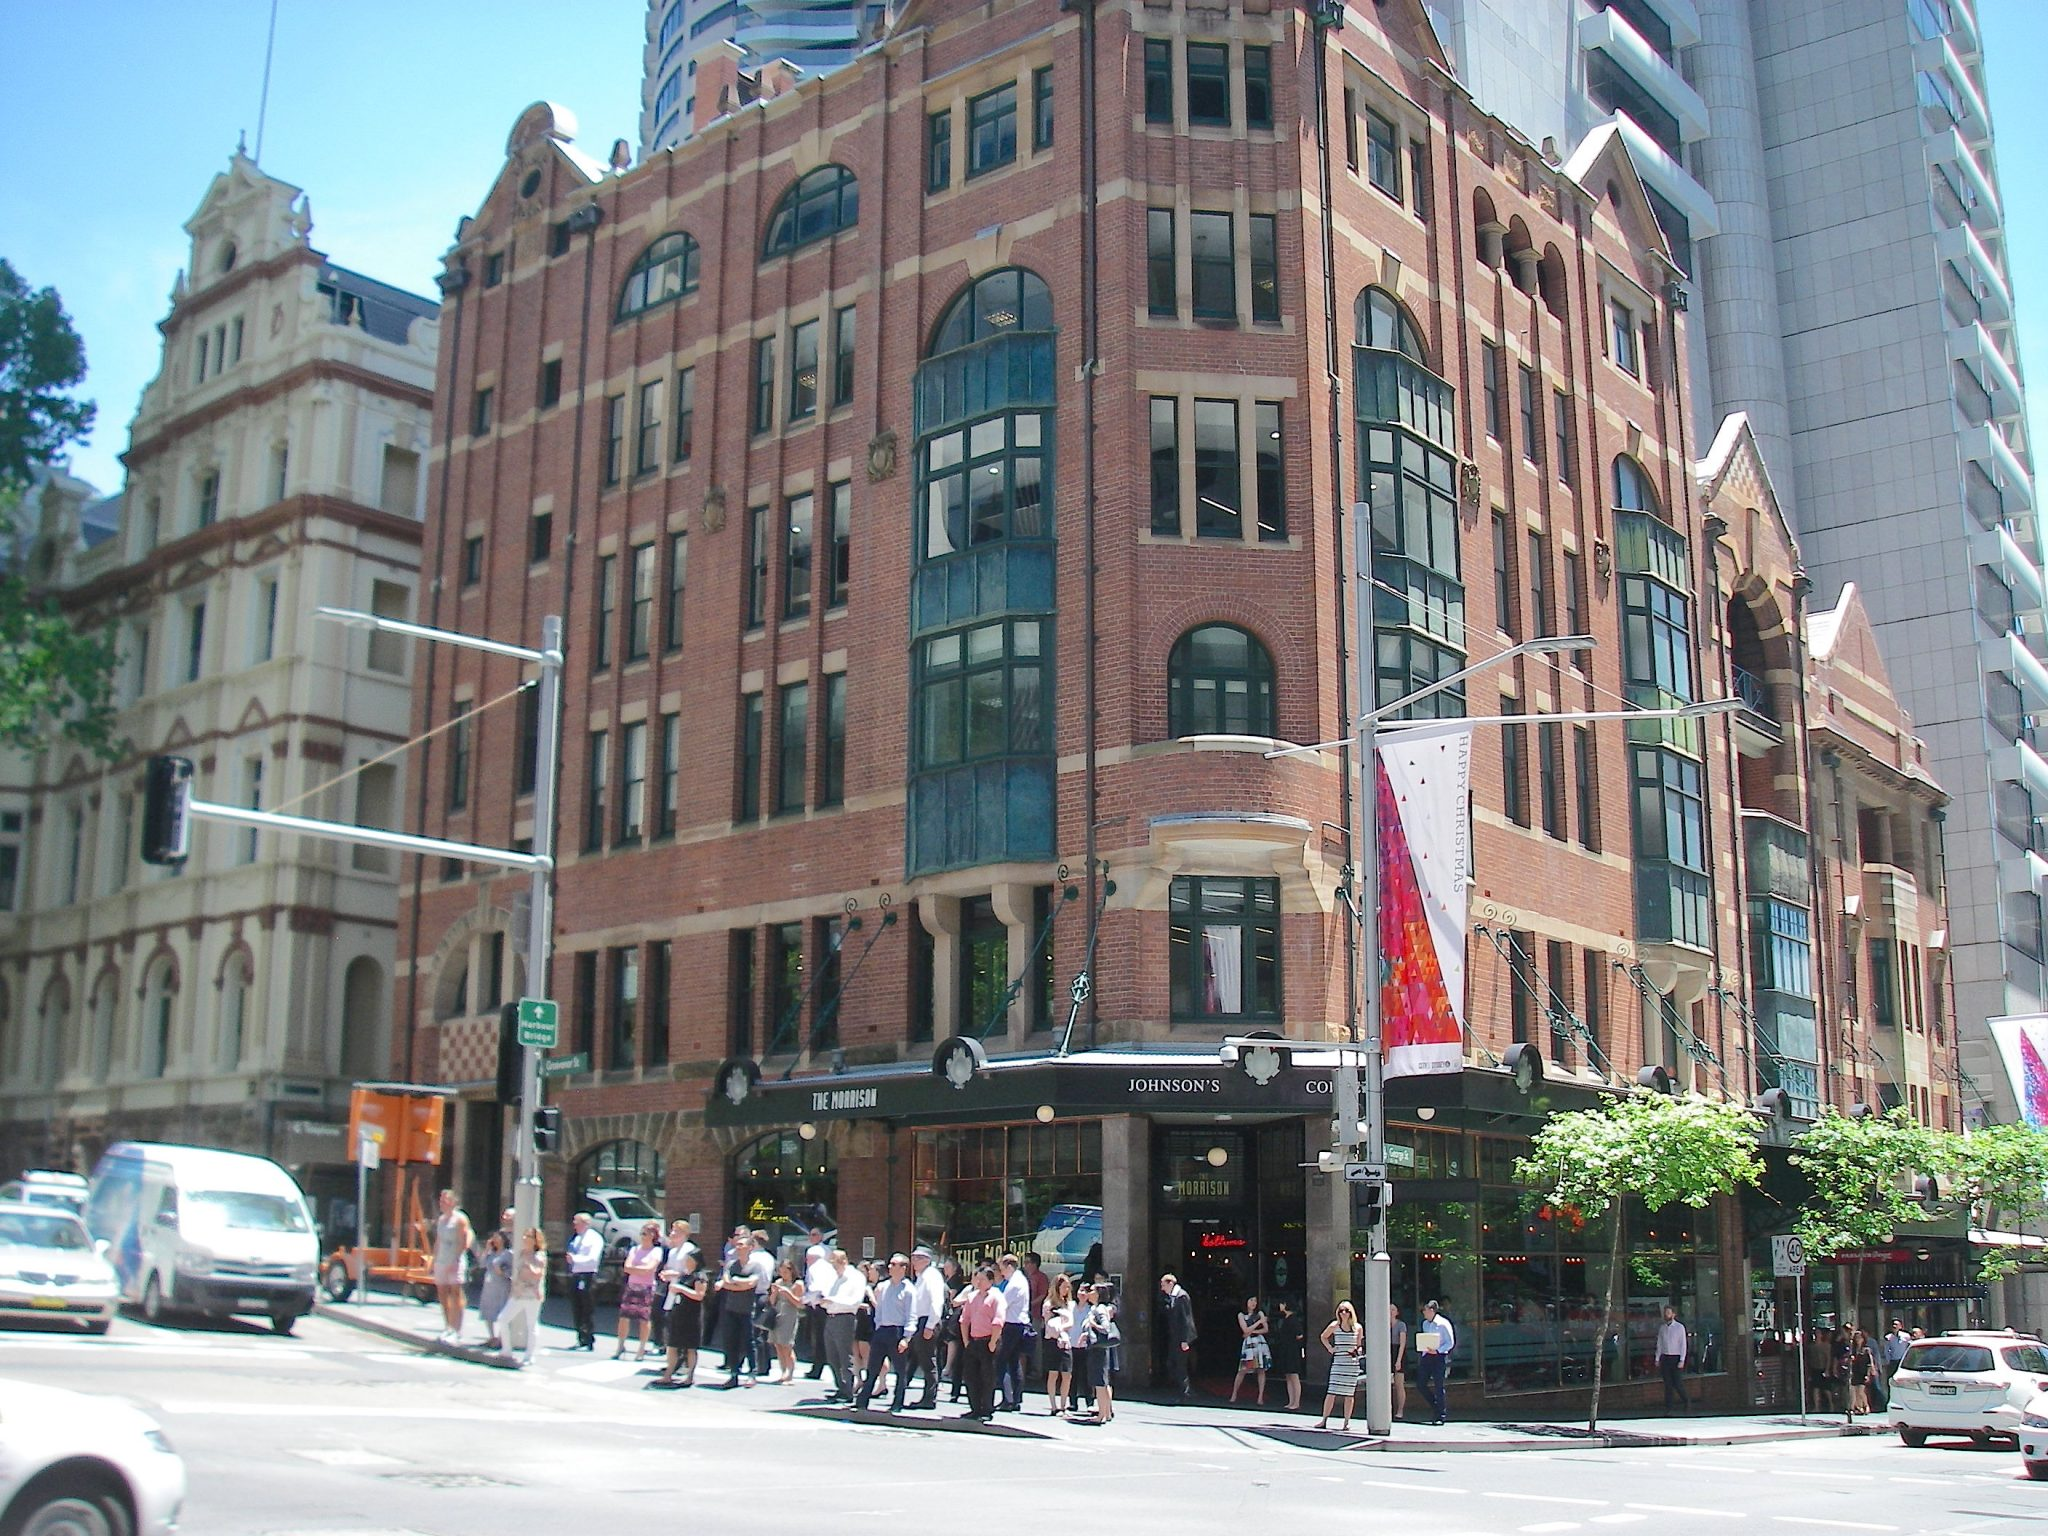 45.1. Christmas banners flew along the central business district in downtown Sydney